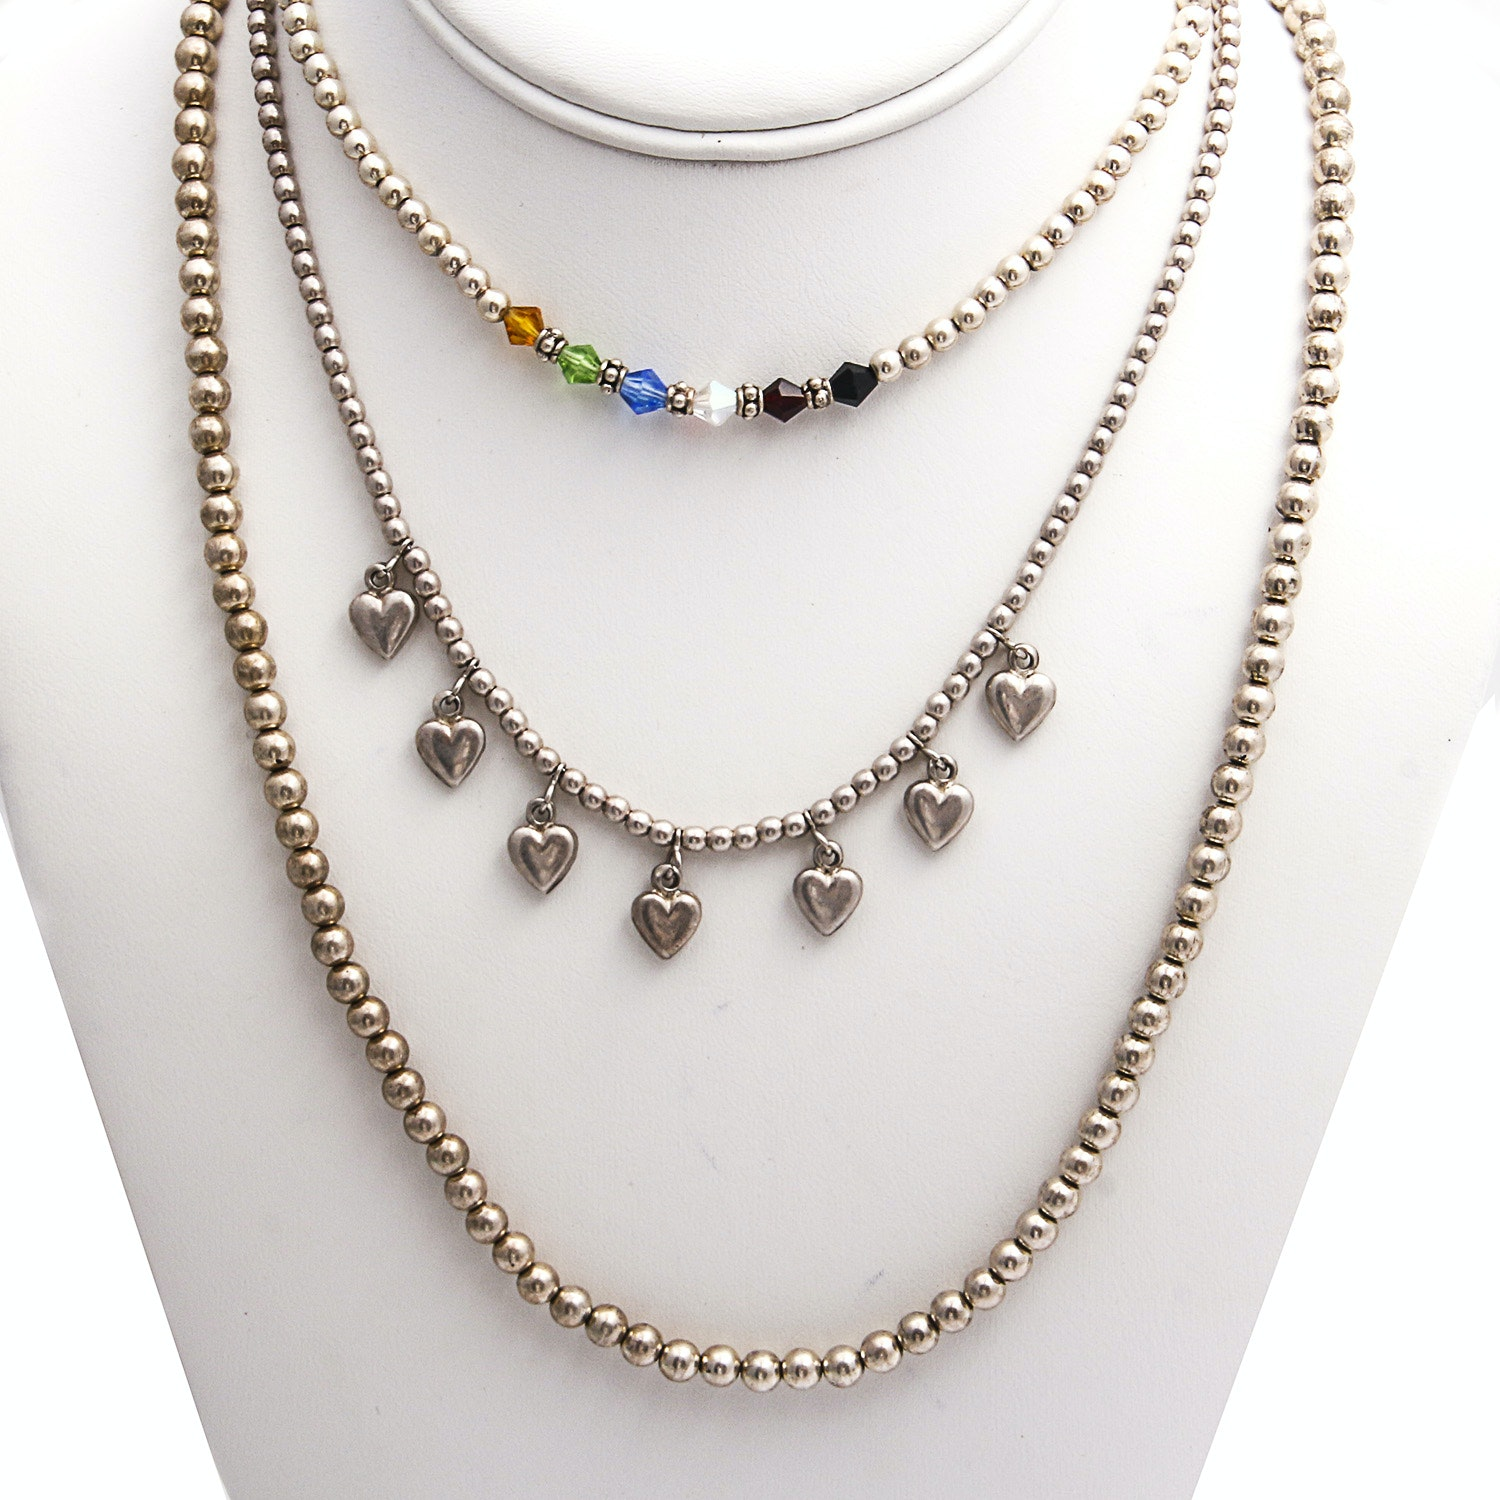 Three Sterling Silver Beaded Necklaces